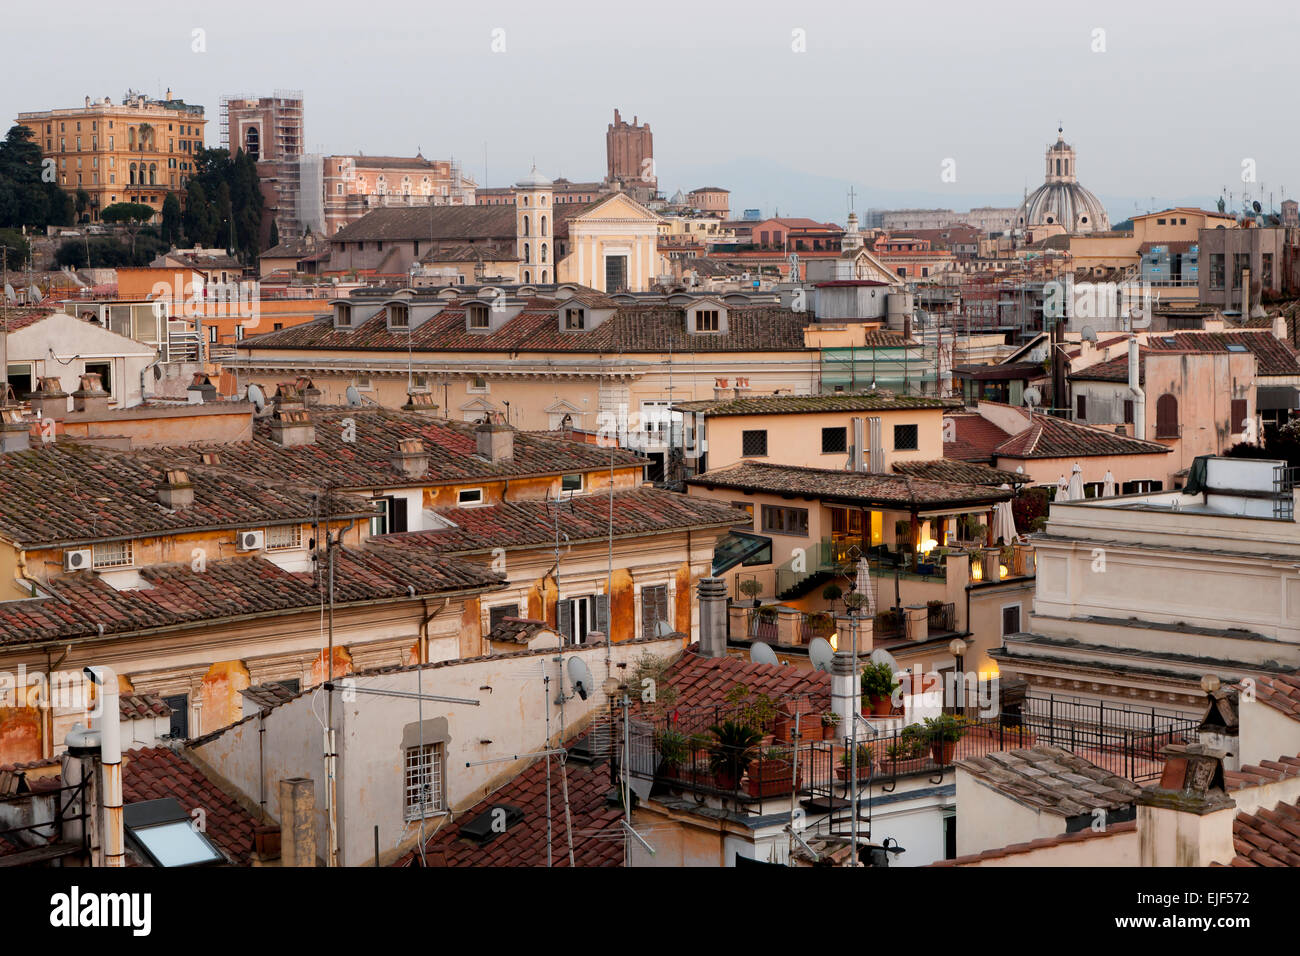 View to the rooftops of Rome Italy from the roof of the Hotel Colonna Palace - Stock Image